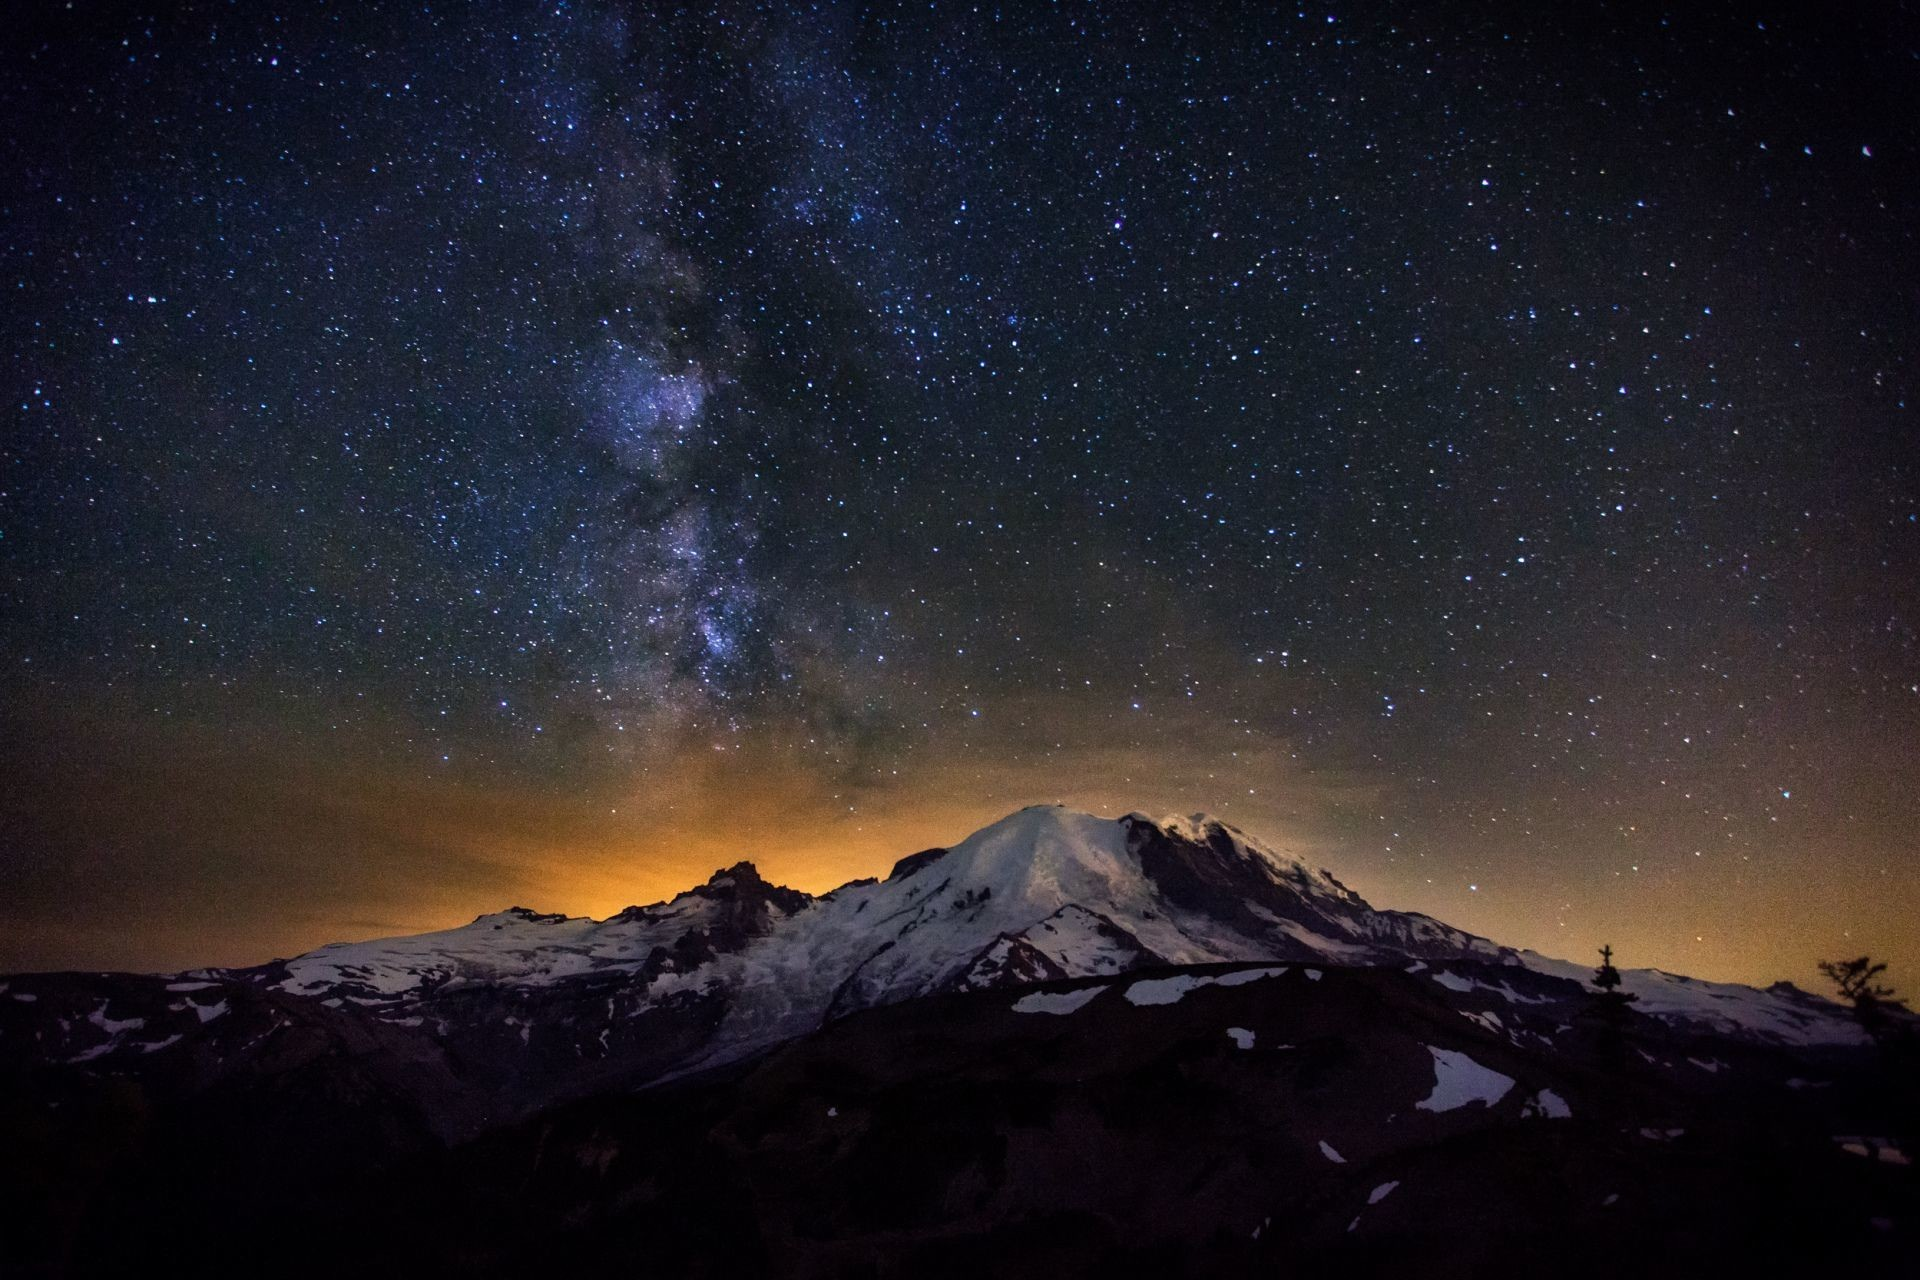 1920x1280 2100x1400 Mount Rainier Wallpaper 58+ - Page 3 of 3 - yese69.com - 4K  Hintergründe Welt